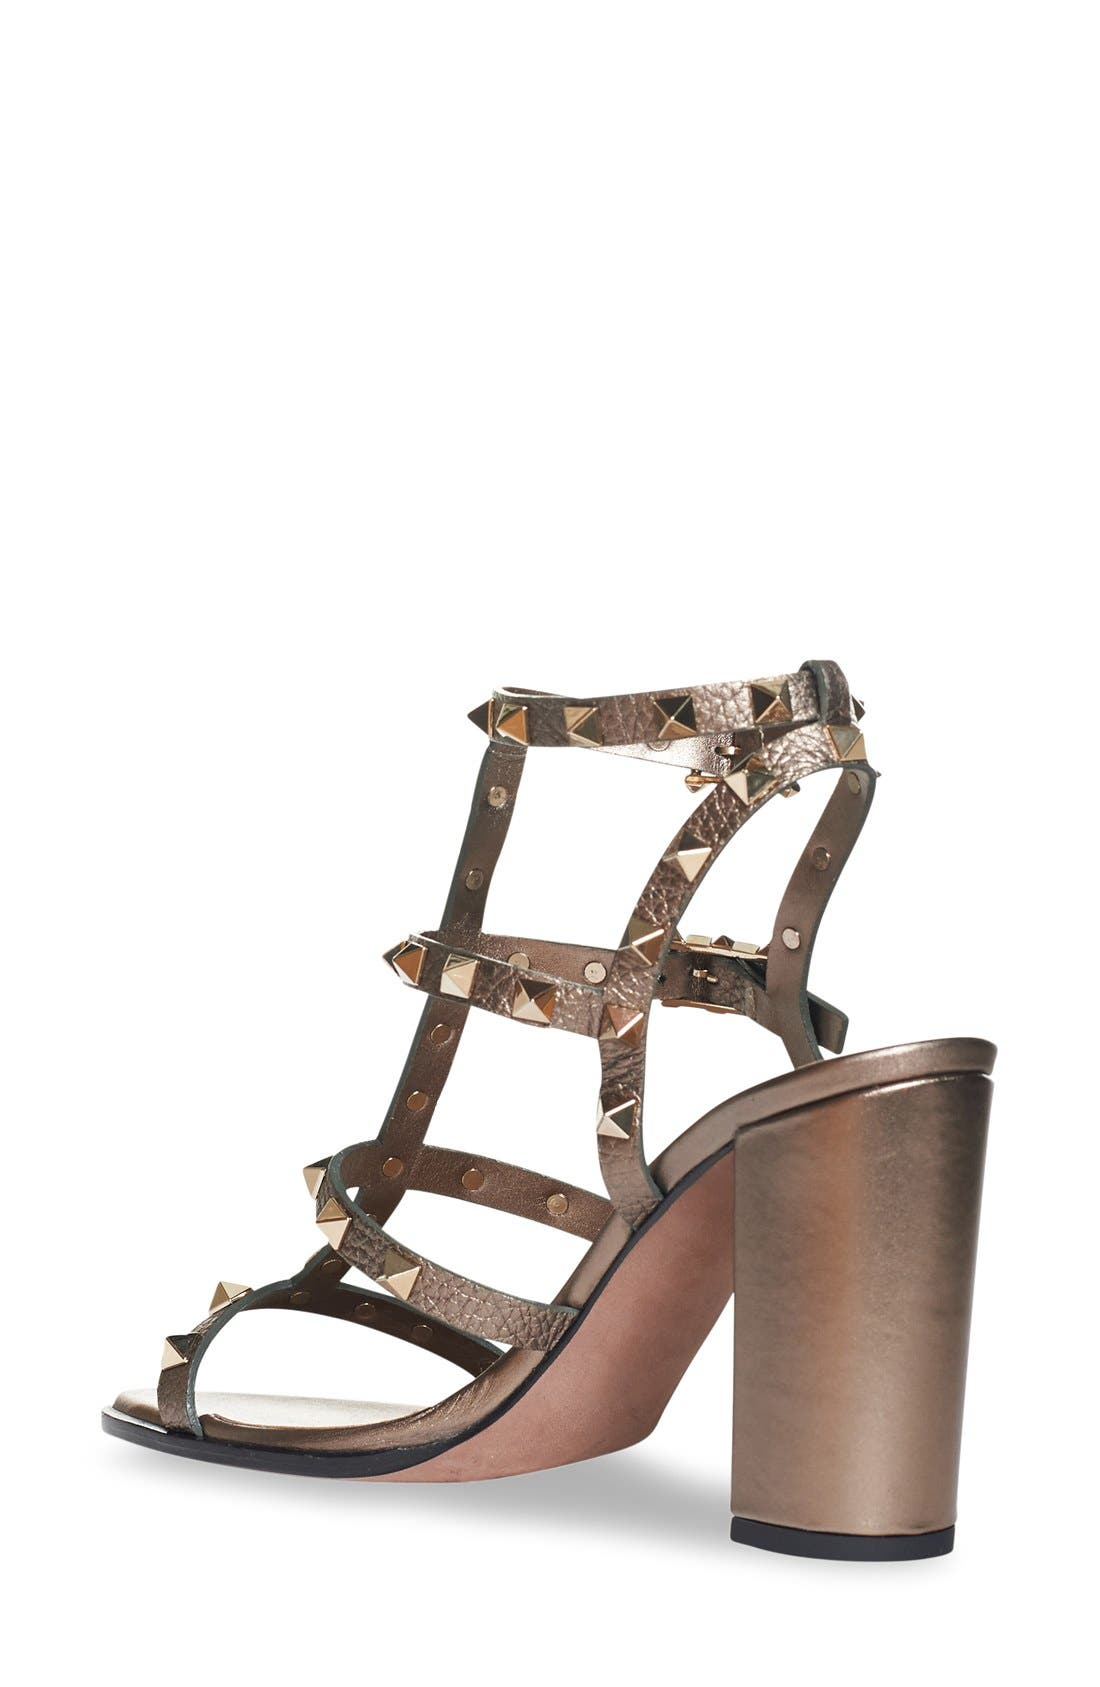 'Rockstud' Cage Sandal,                             Alternate thumbnail 2, color,                             229